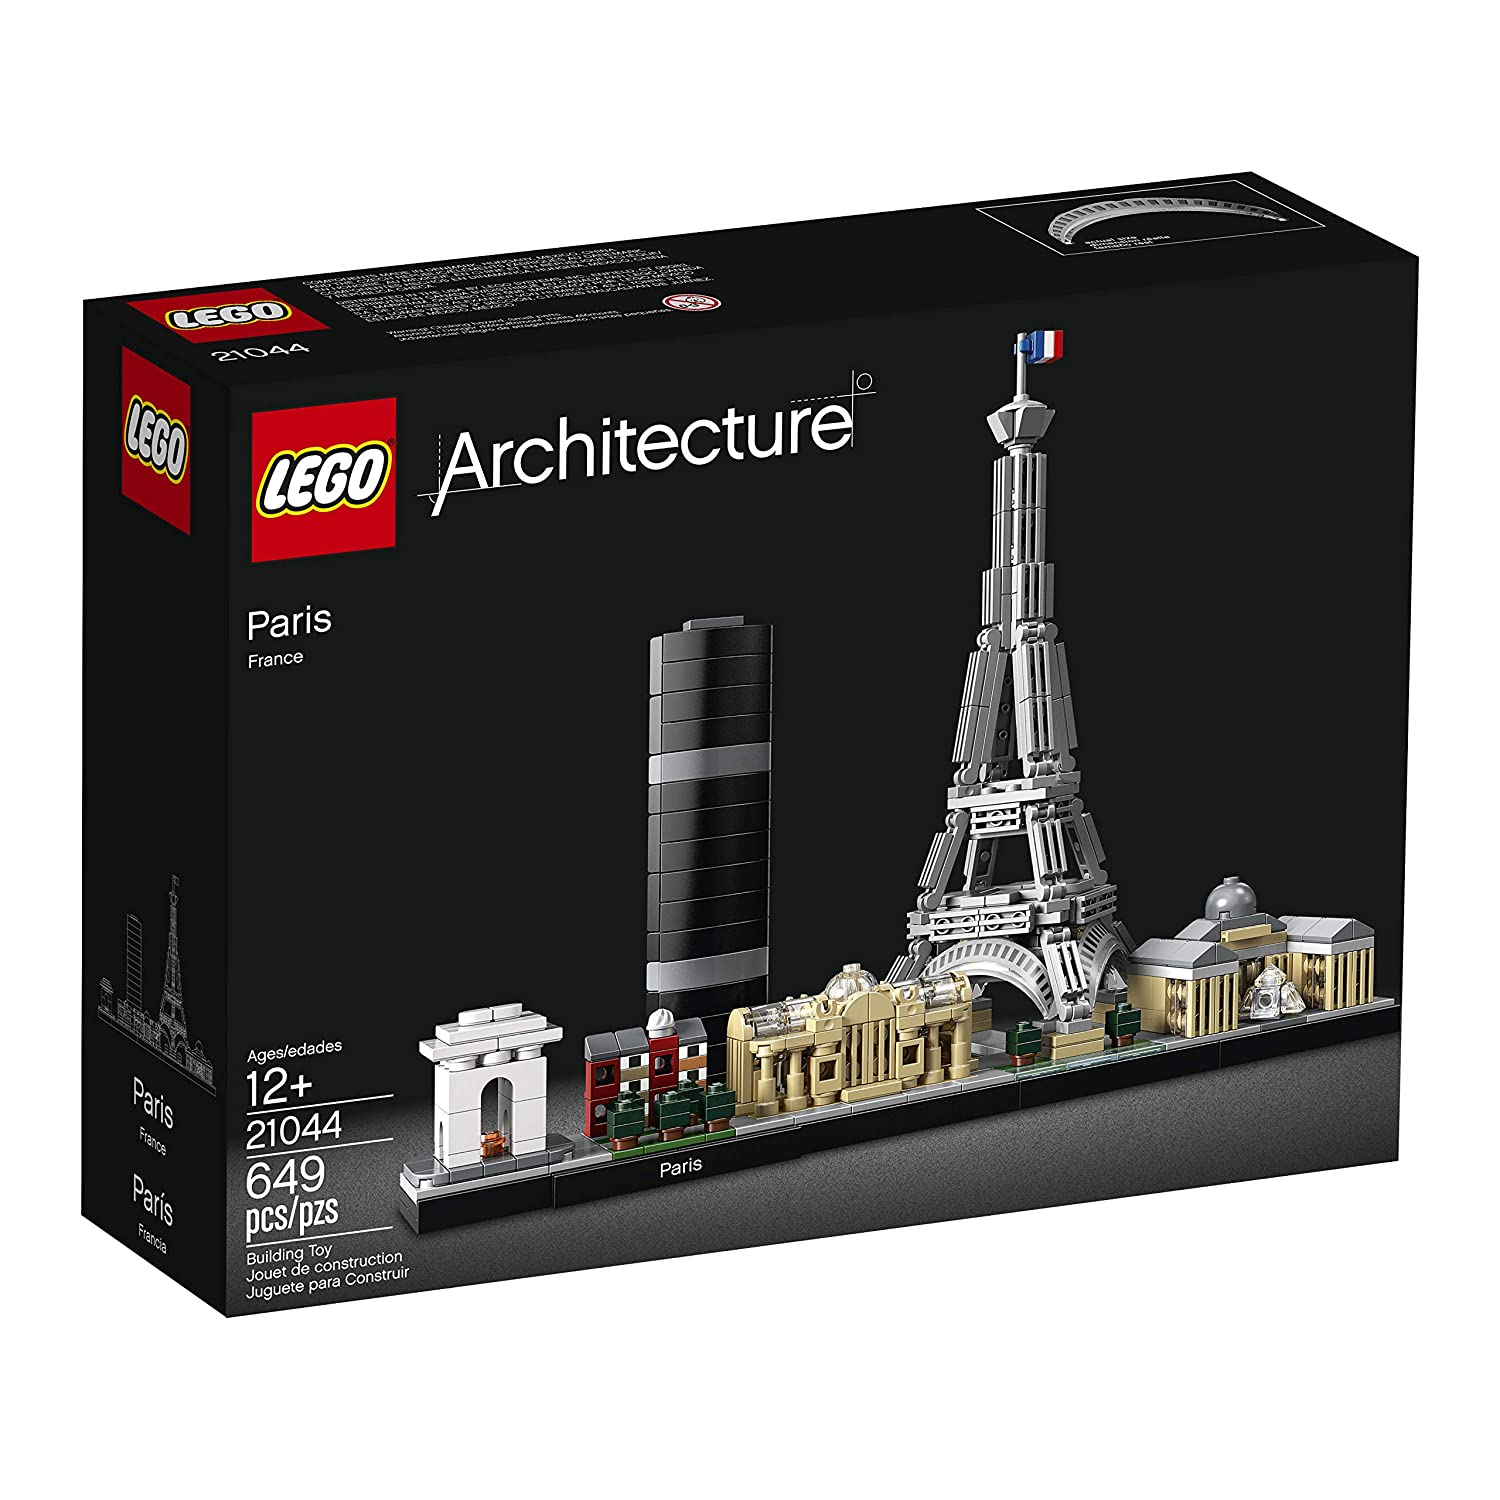 Top 5 Best LEGO Eiffel Tower Sets Reviews in 2020 3